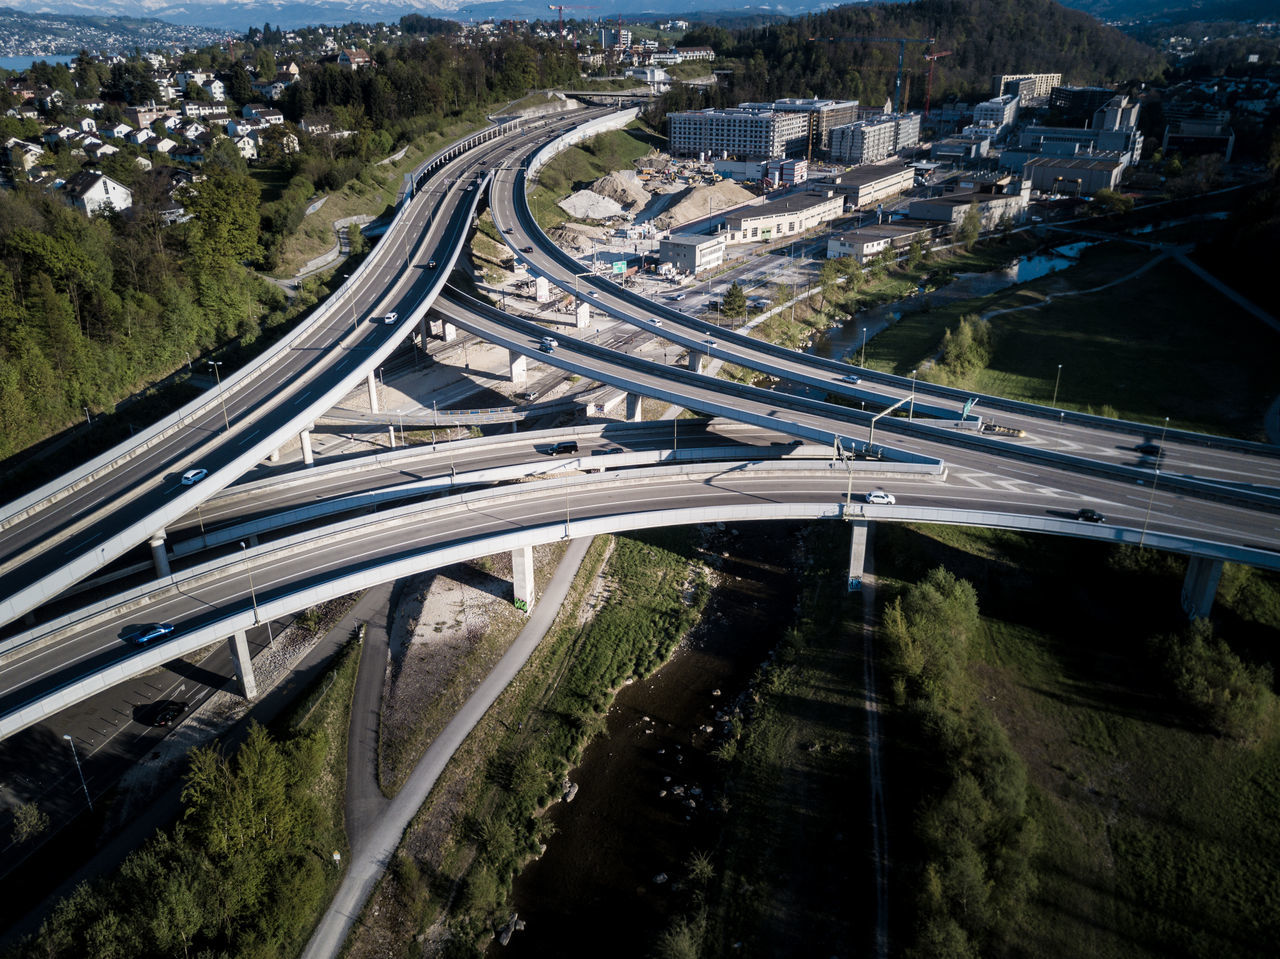 Aerial View Architecture Built Structure Car City City Life Connection Elevated Road EyeEmNewHere Futuristic High Angle View Highway Land Vehicle Mode Of Transport Motion Multiple Lane Highway Outdoors Overpass Road Road Intersection Speed Street Light Traffic Transportation